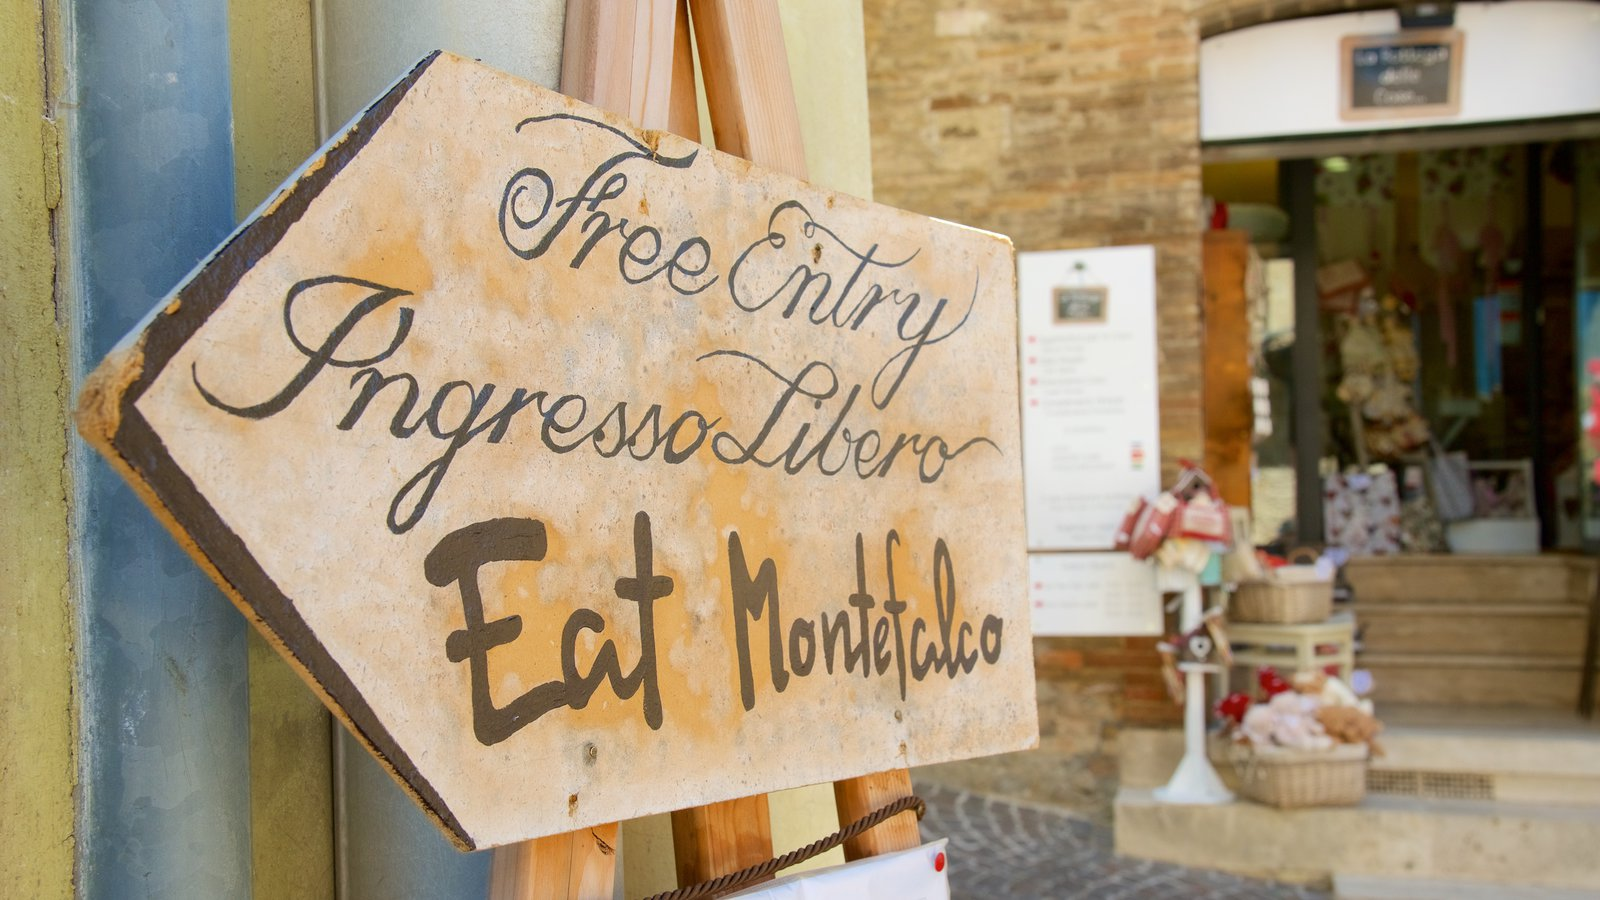 Montefalco featuring signage